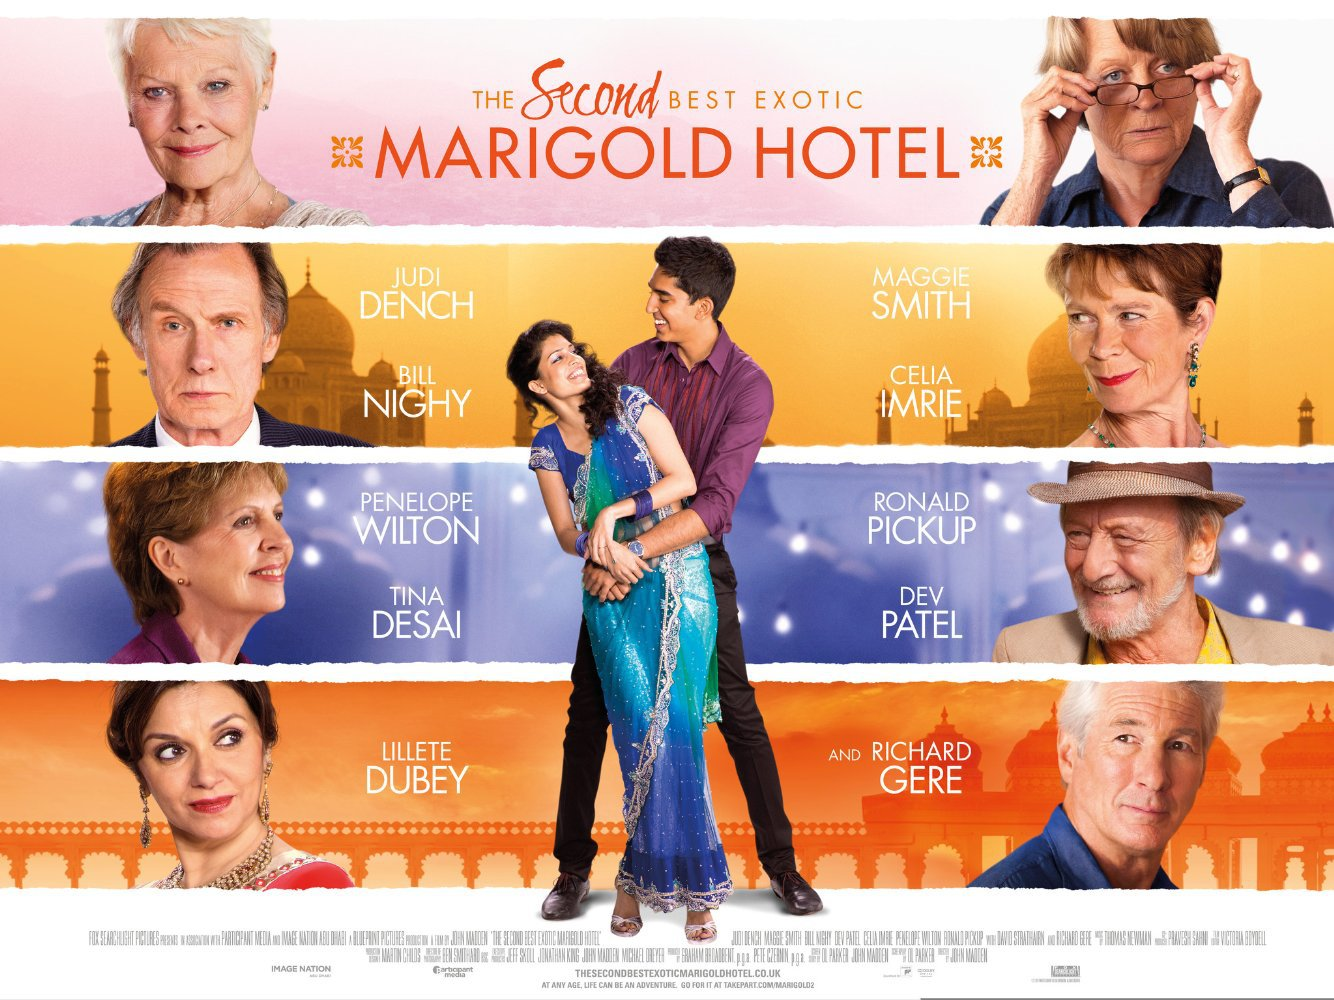 Download The Second Best Exotic Marigold Hotel movie for iPod/iPhone/iPad in hd, Divx, DVD or ...